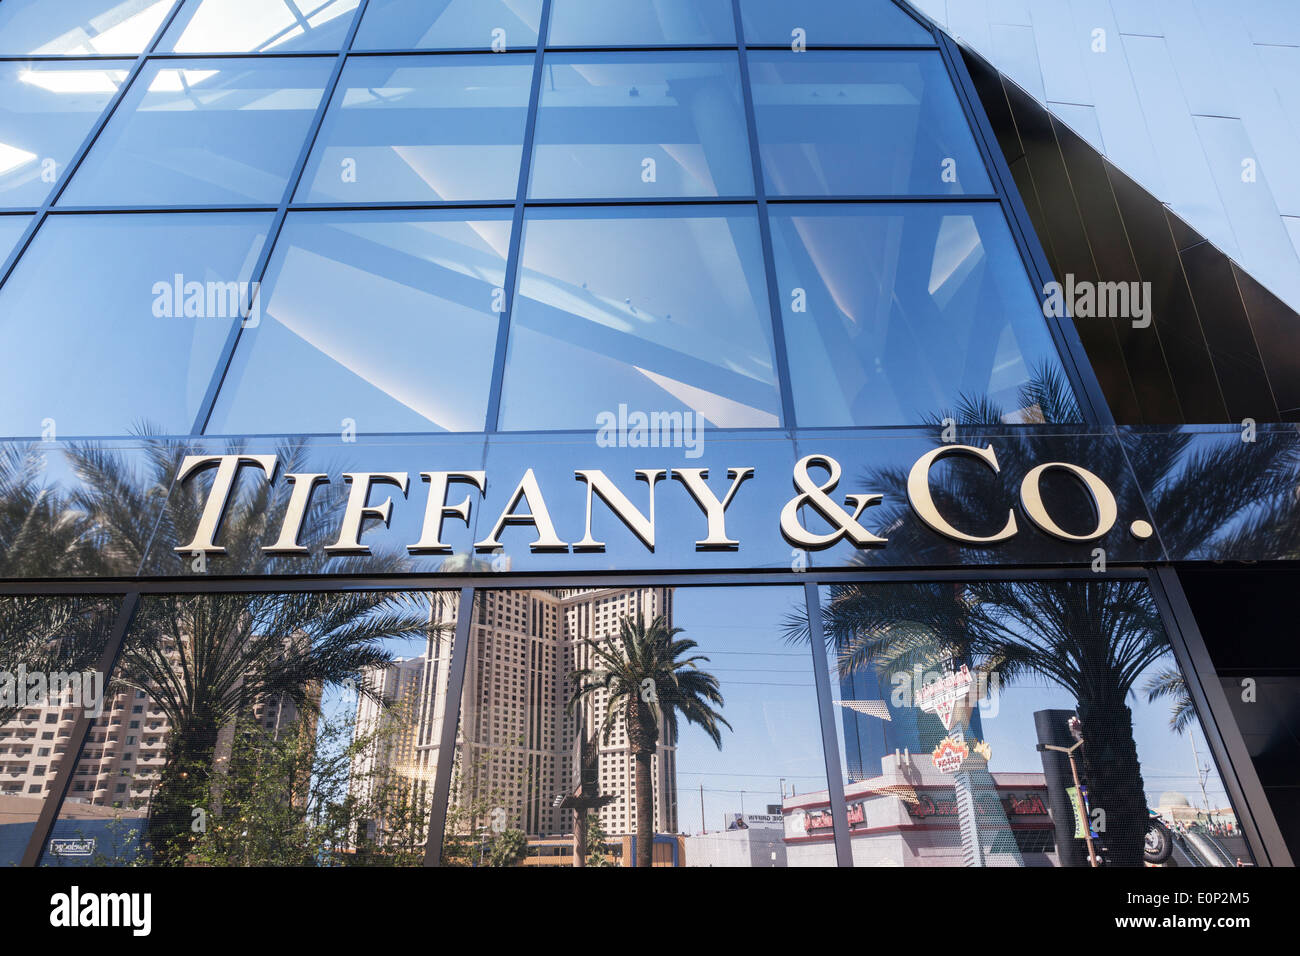 Tiffany and Co logo on a shop front in Las Vegas. - Stock Image